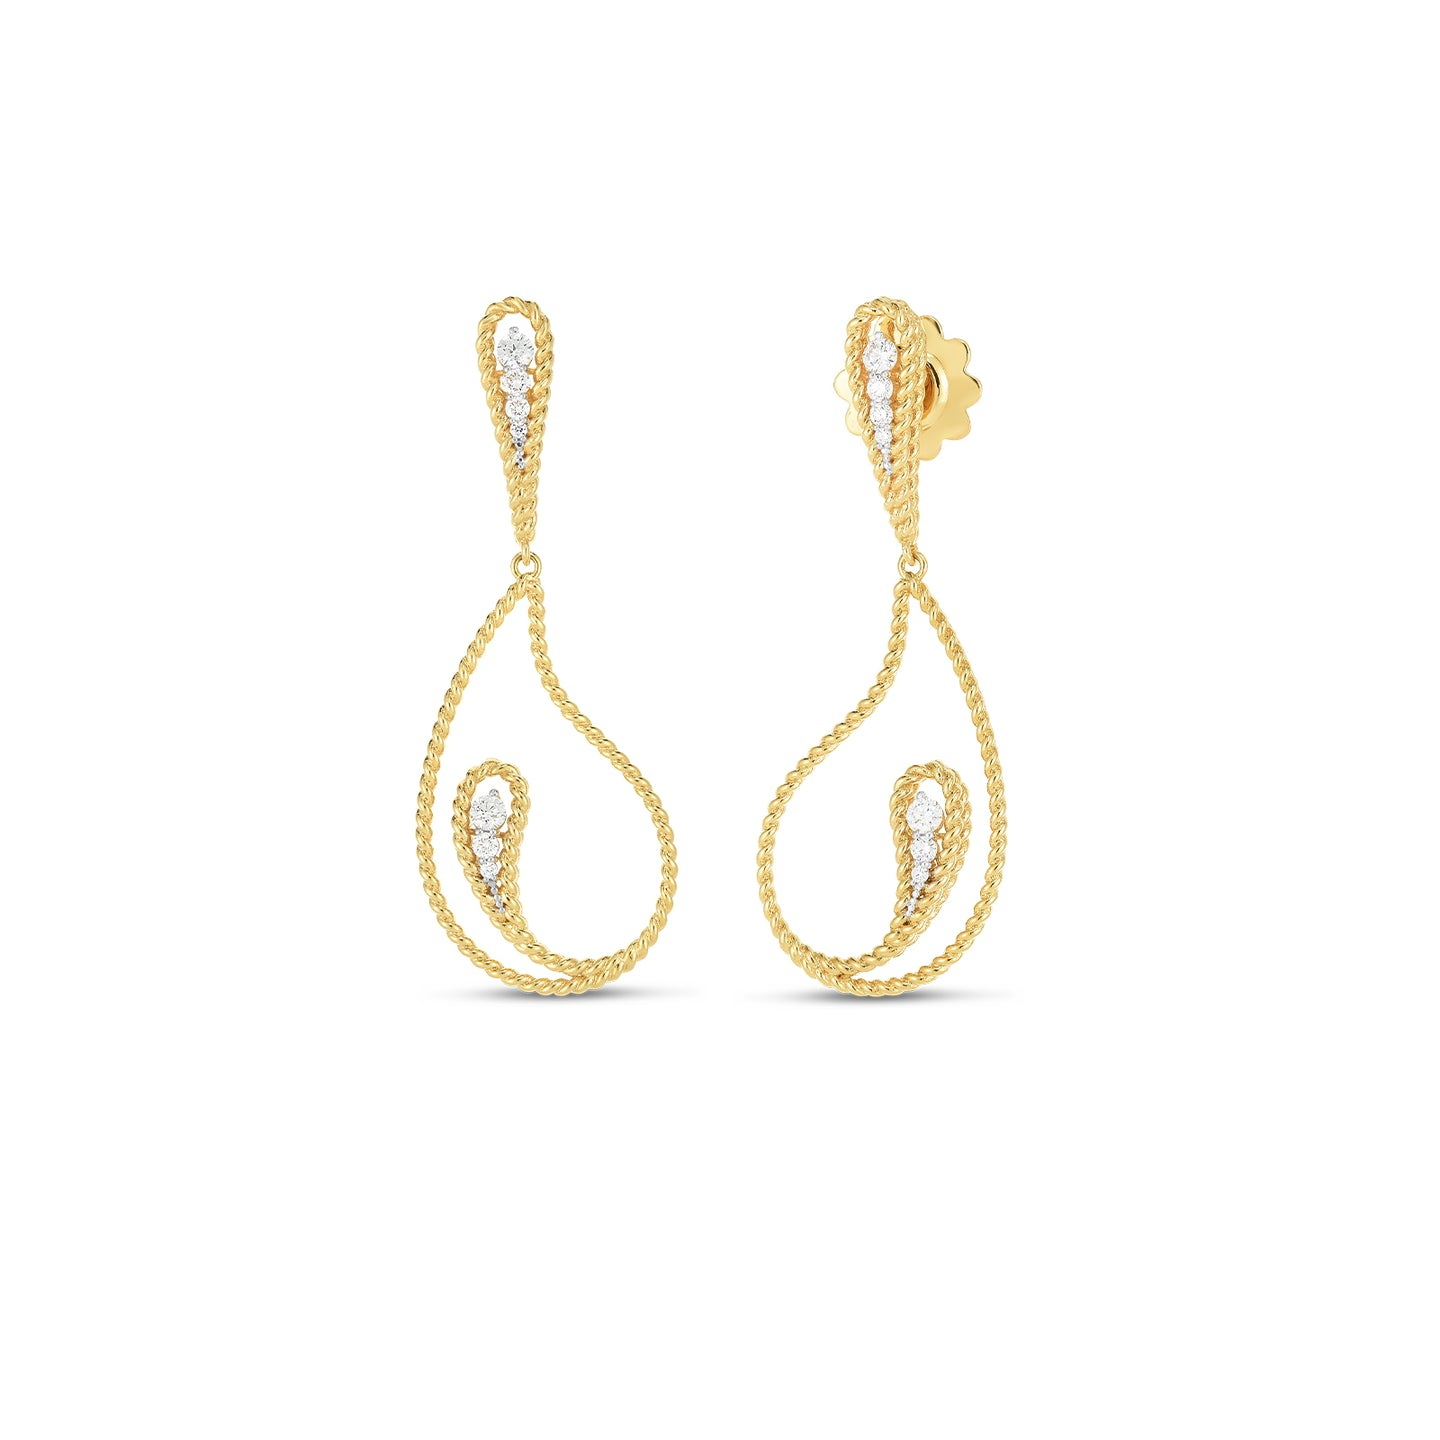 Roberto Coin Byzantine Barocco 18K Yellow Gold Diamond Paisley Drop Earrings